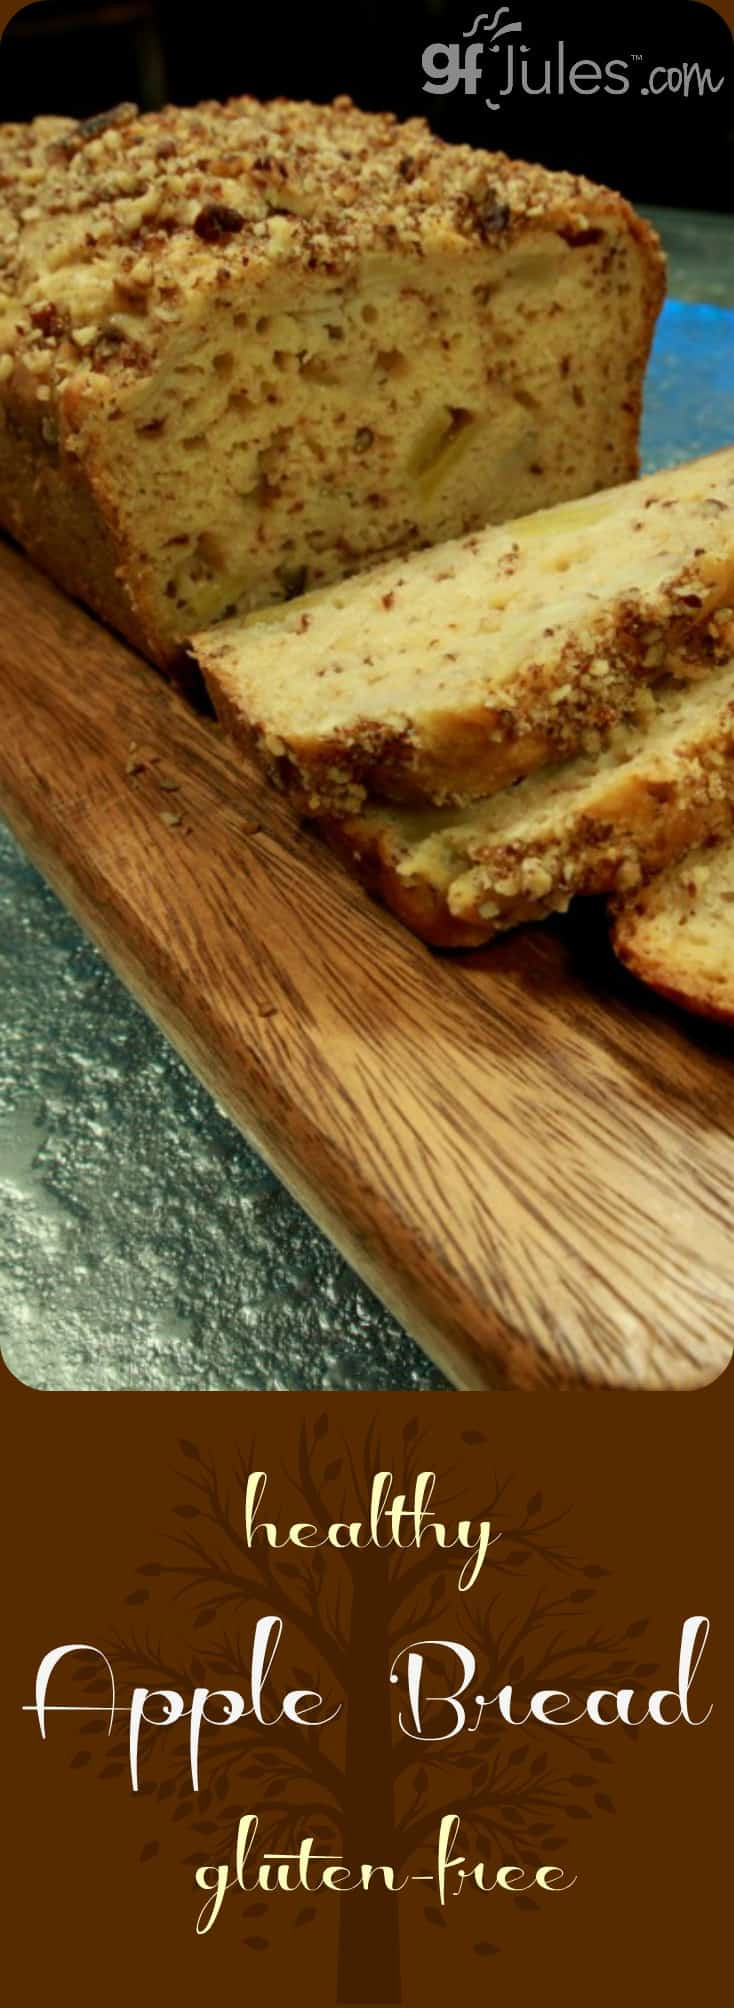 Healthy Gluten Free Bread  Healthy Gluten Free Apple Bread gfJules